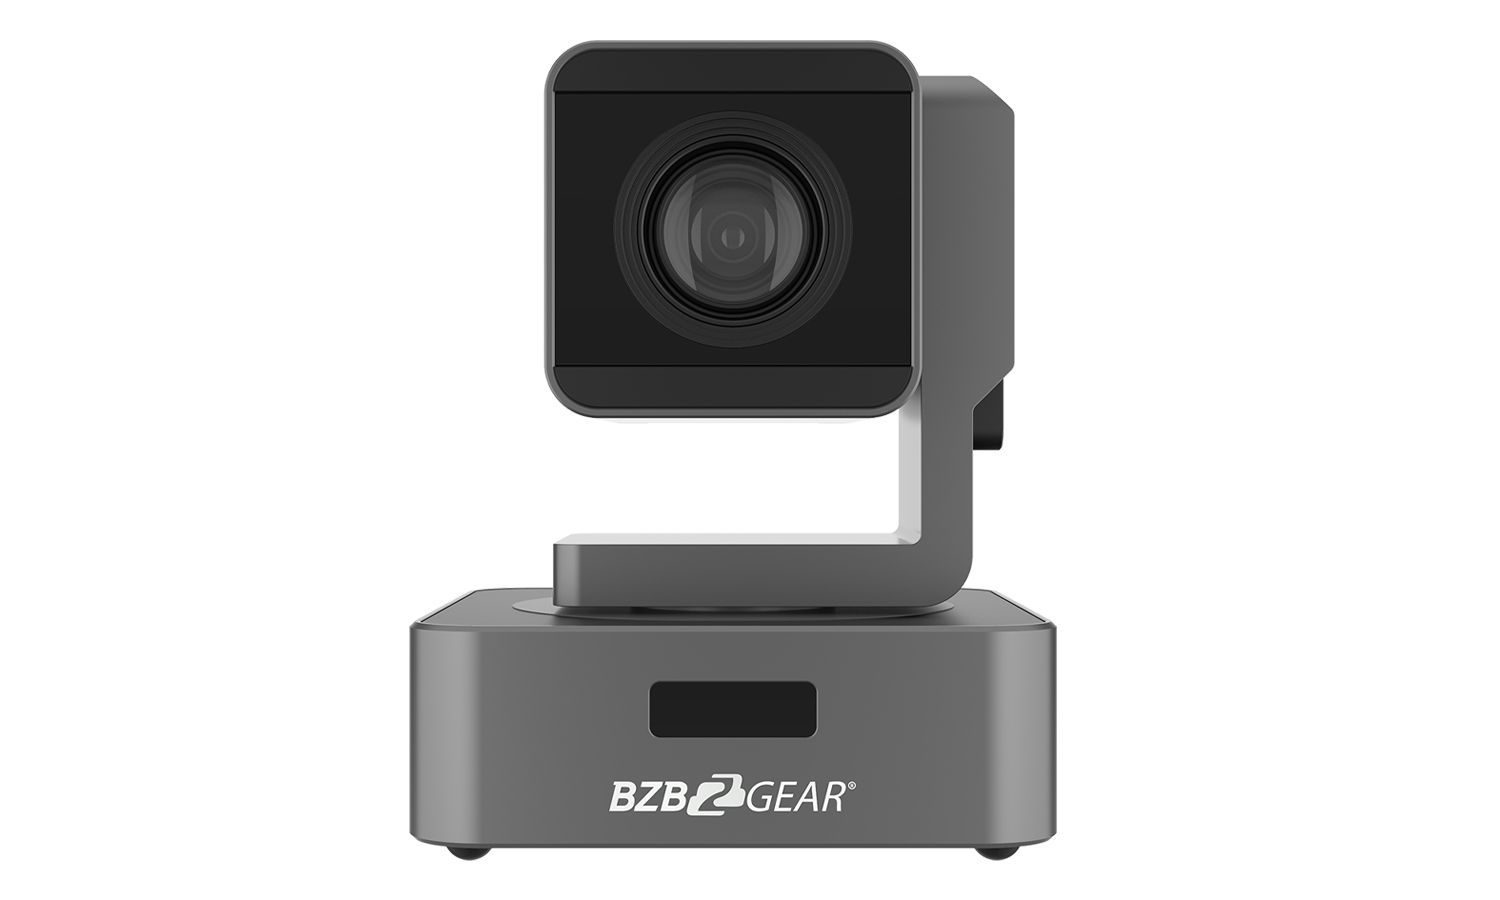 BZBGEAR BG-VPTZ-HSU10X PTZ Full HD 1080P 10X Zoom HDMI/SDI/USB 2.0 Live Streaming Camera